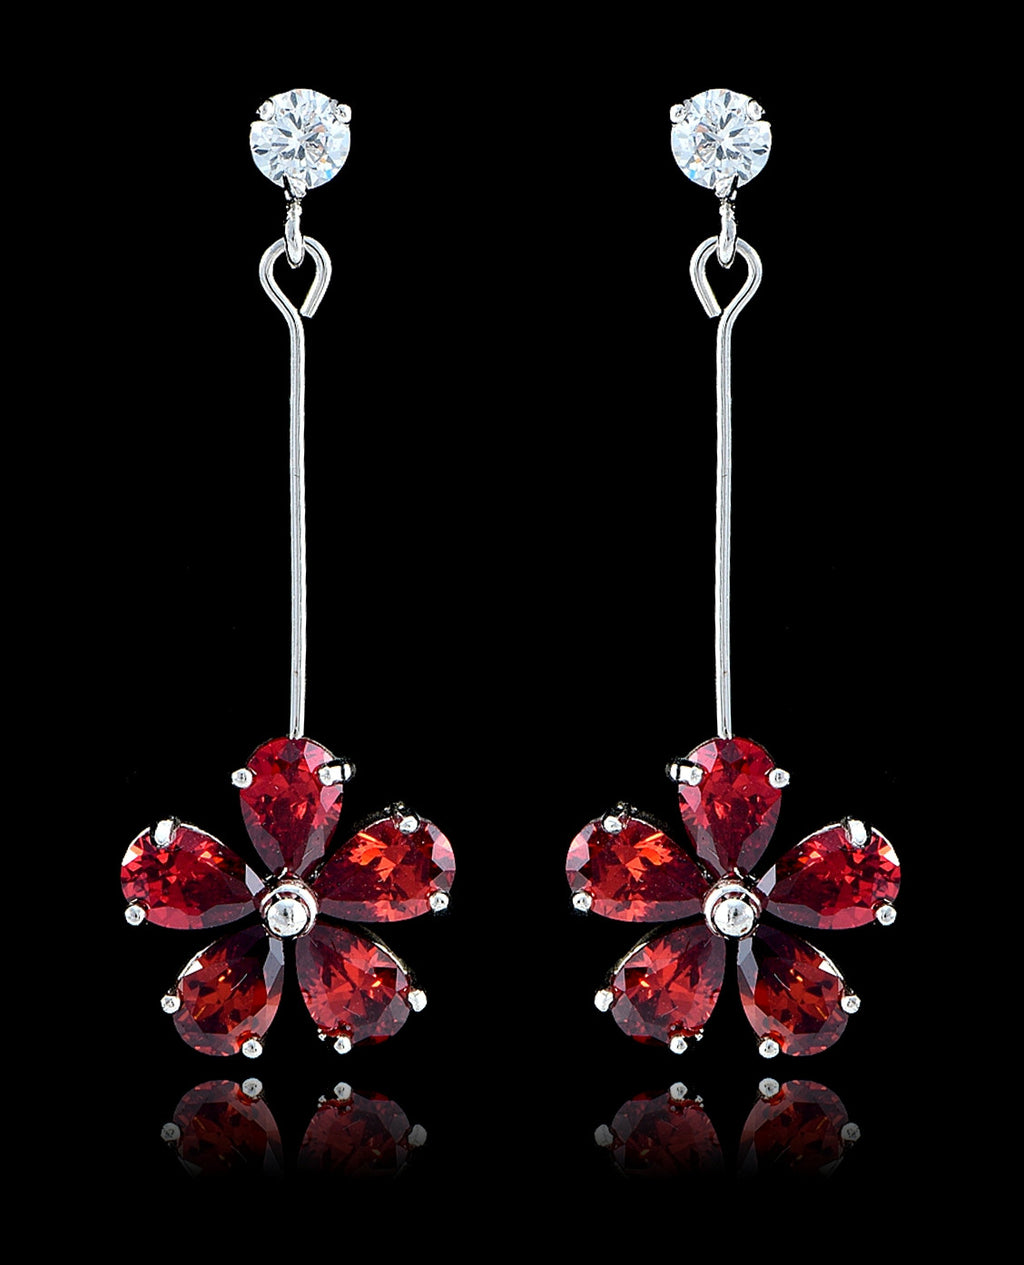 Garnet Cubic Zirconia Flower Earrings - Bedazzled By Jeanelle - 1